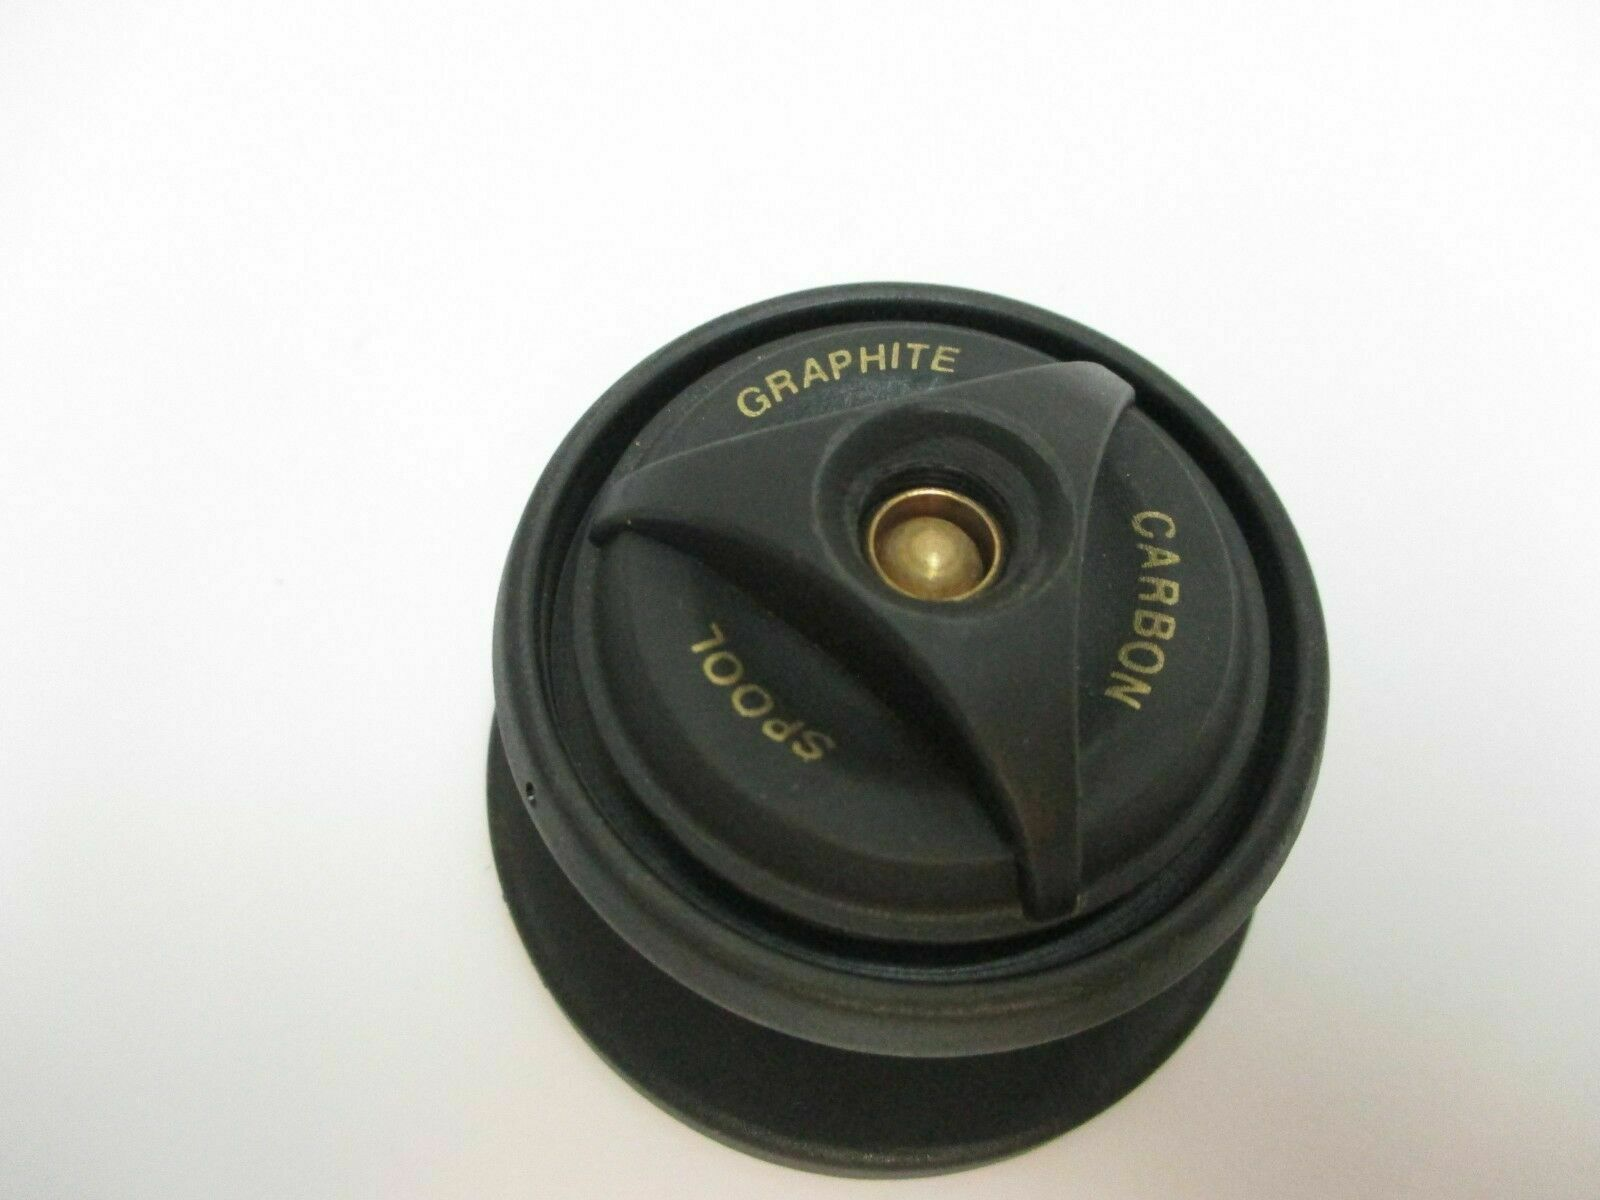 New Graphite Spool Mitchell 300 300A 330 400 400A 440 510 Reels NOS Parts 83589